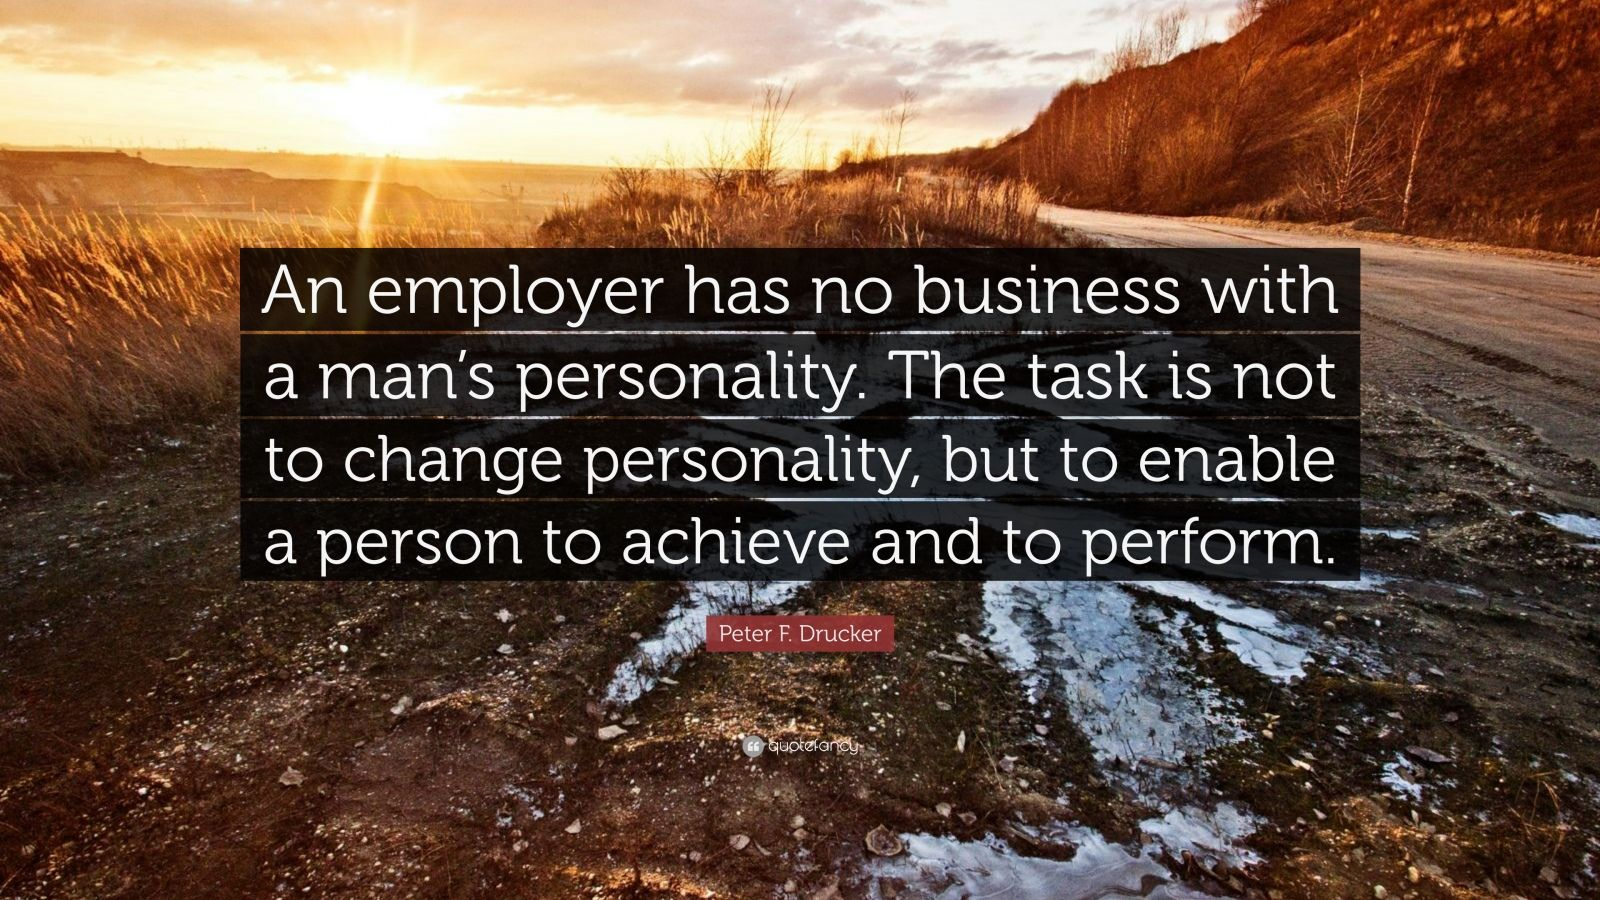 """Peter F. Drucker Quote: """"An employer has no business with a man's personality. The task is not to change personality, but to enable a person to achieve and to perform."""""""